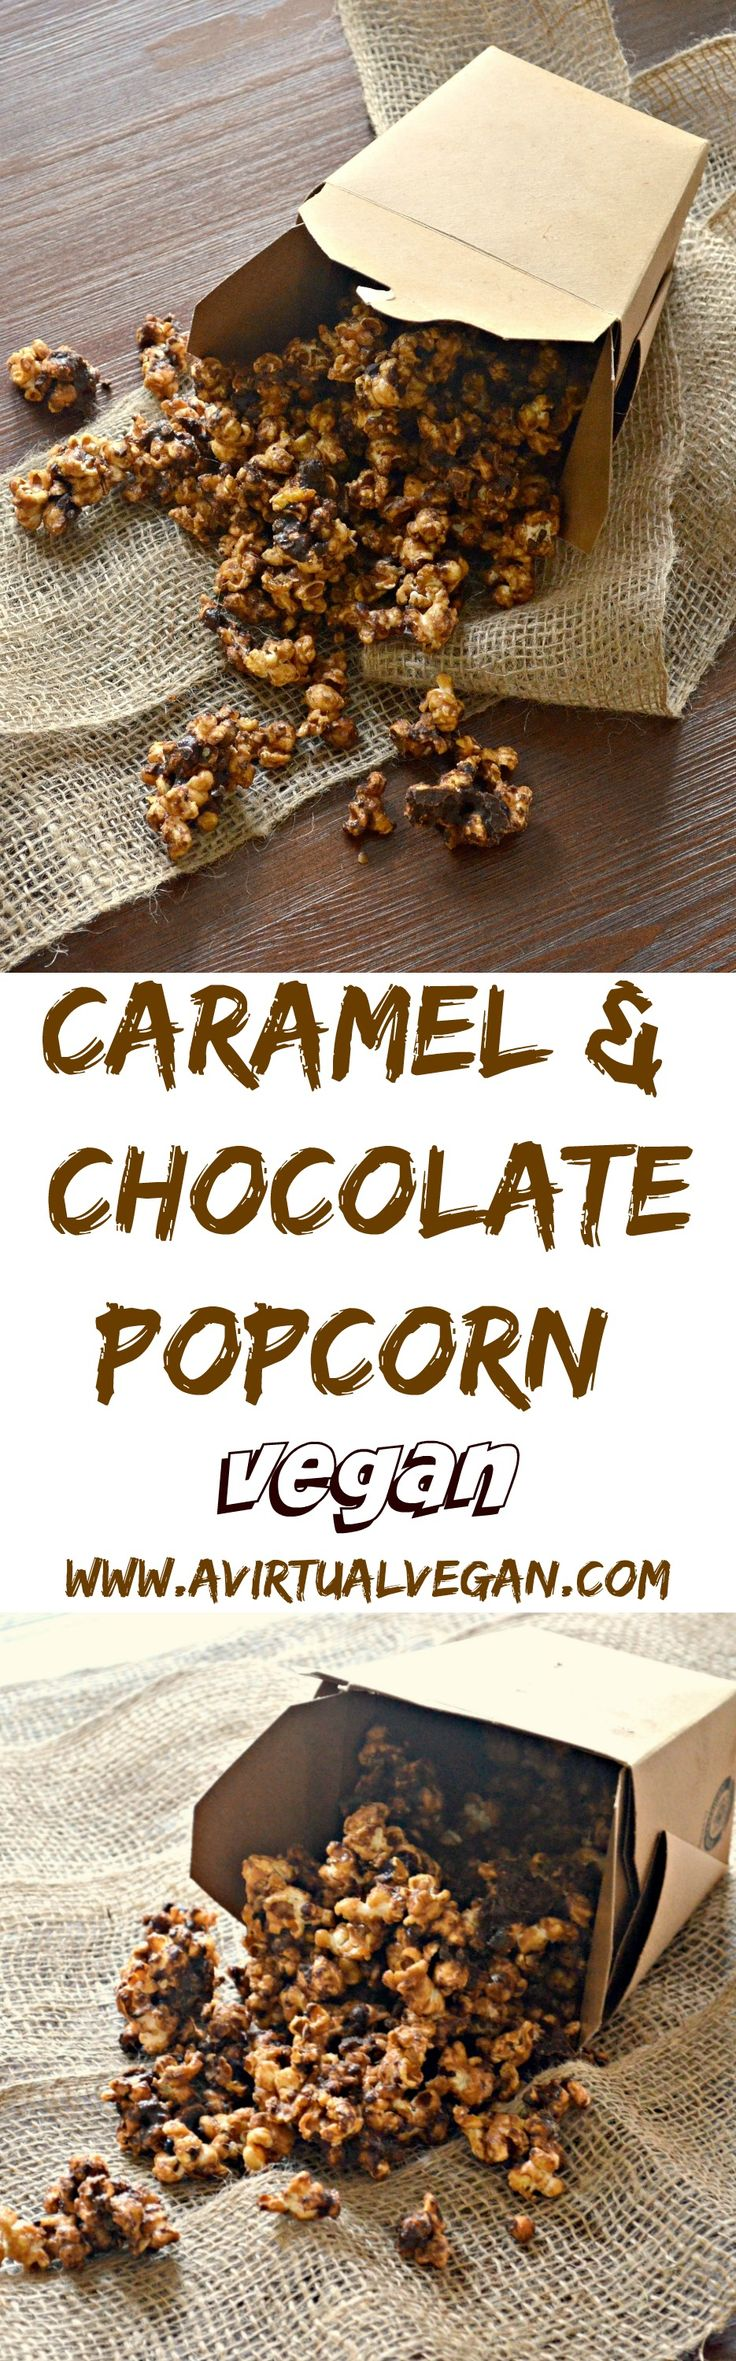 This popcorn is seriously addictive. Drenched in rich, buttery salted caramel, baked until perfectly crisp & then finished with lashings of chocolate, it is totally & utterly delicious & absolutely dairy free!